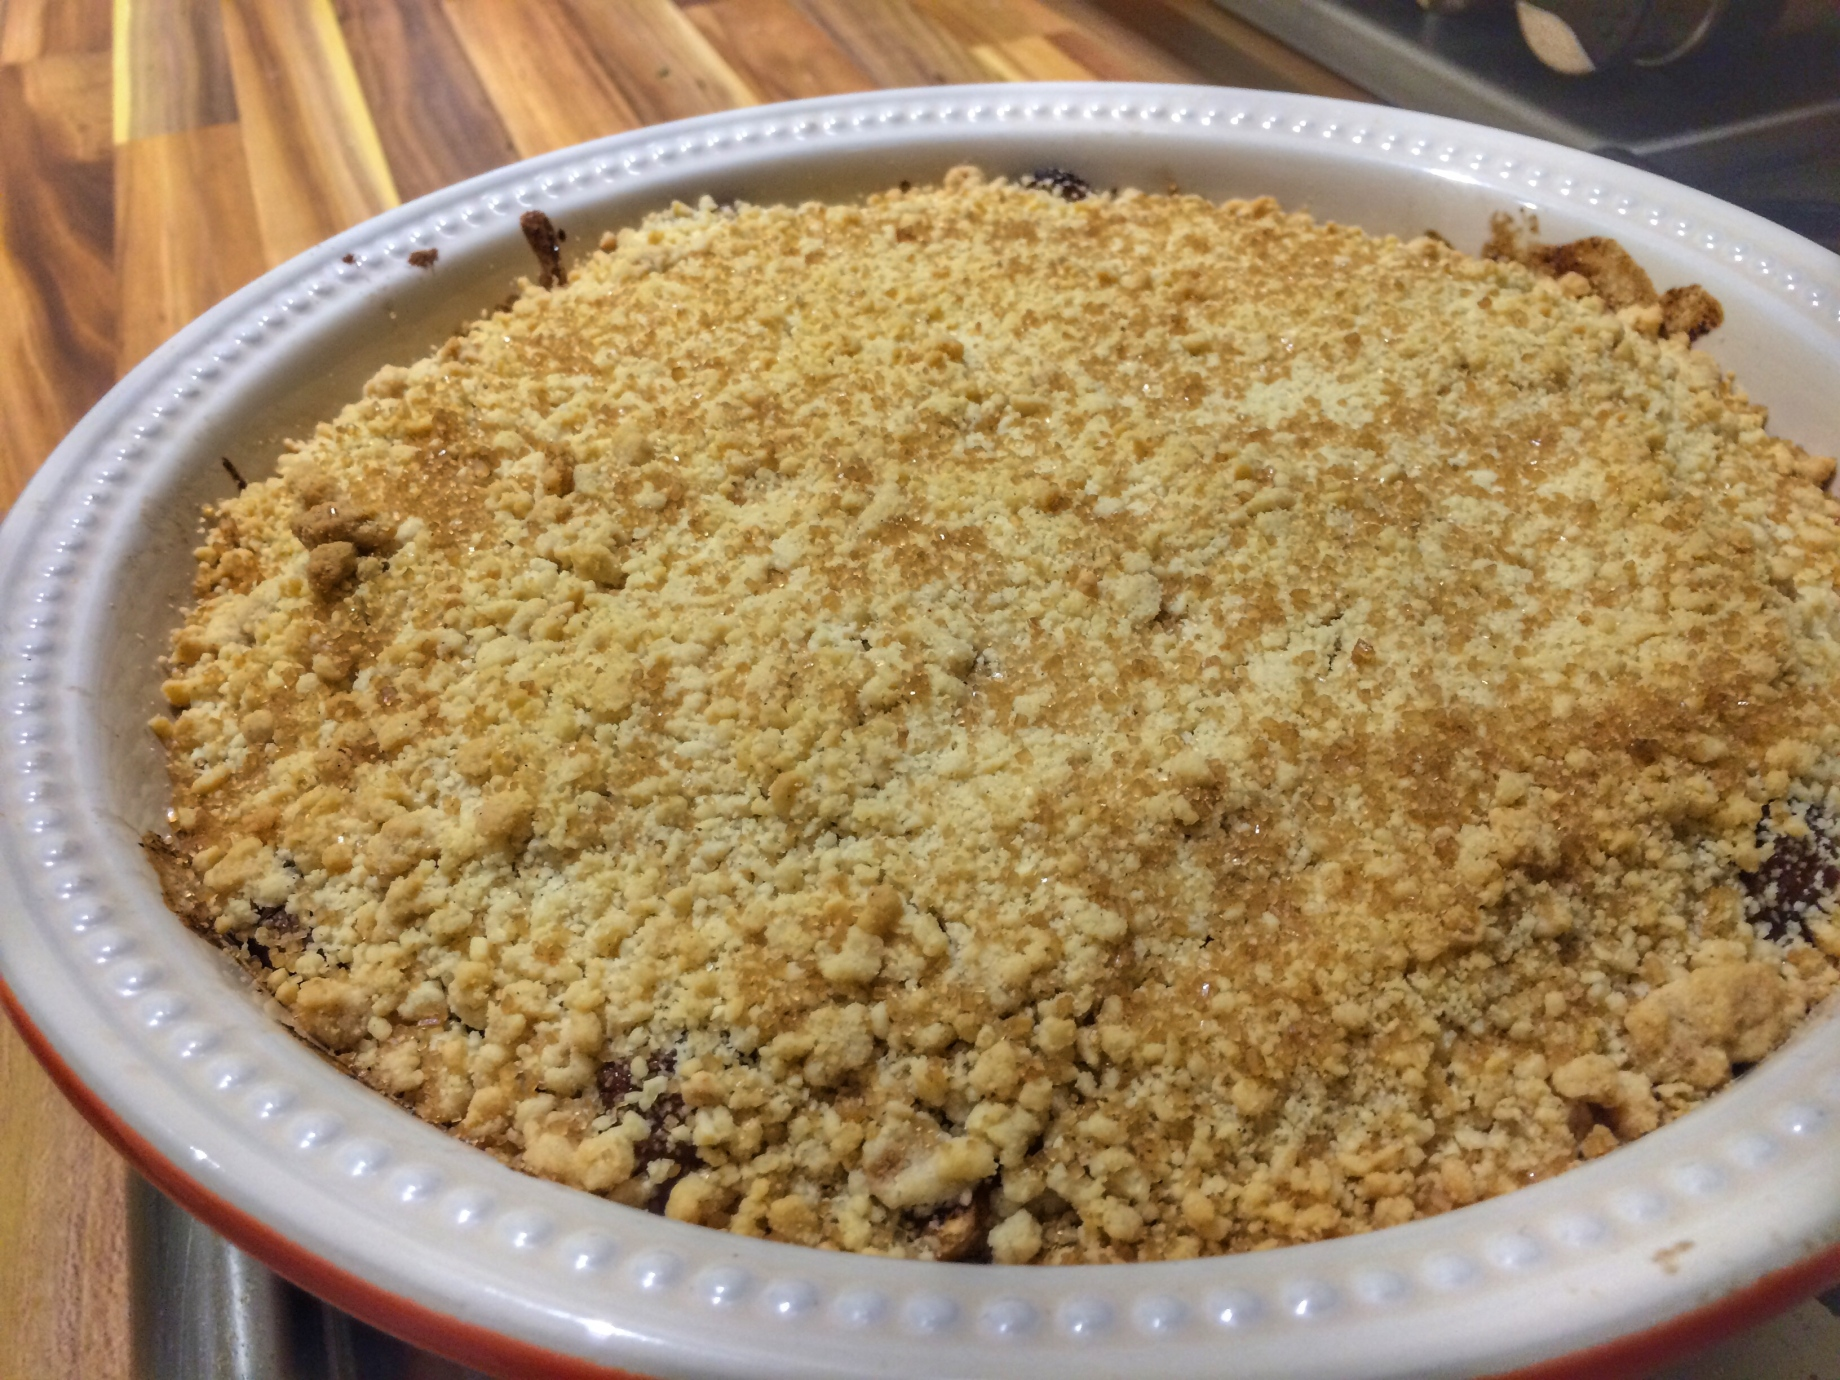 Spiced apricot and banana crumble recipe